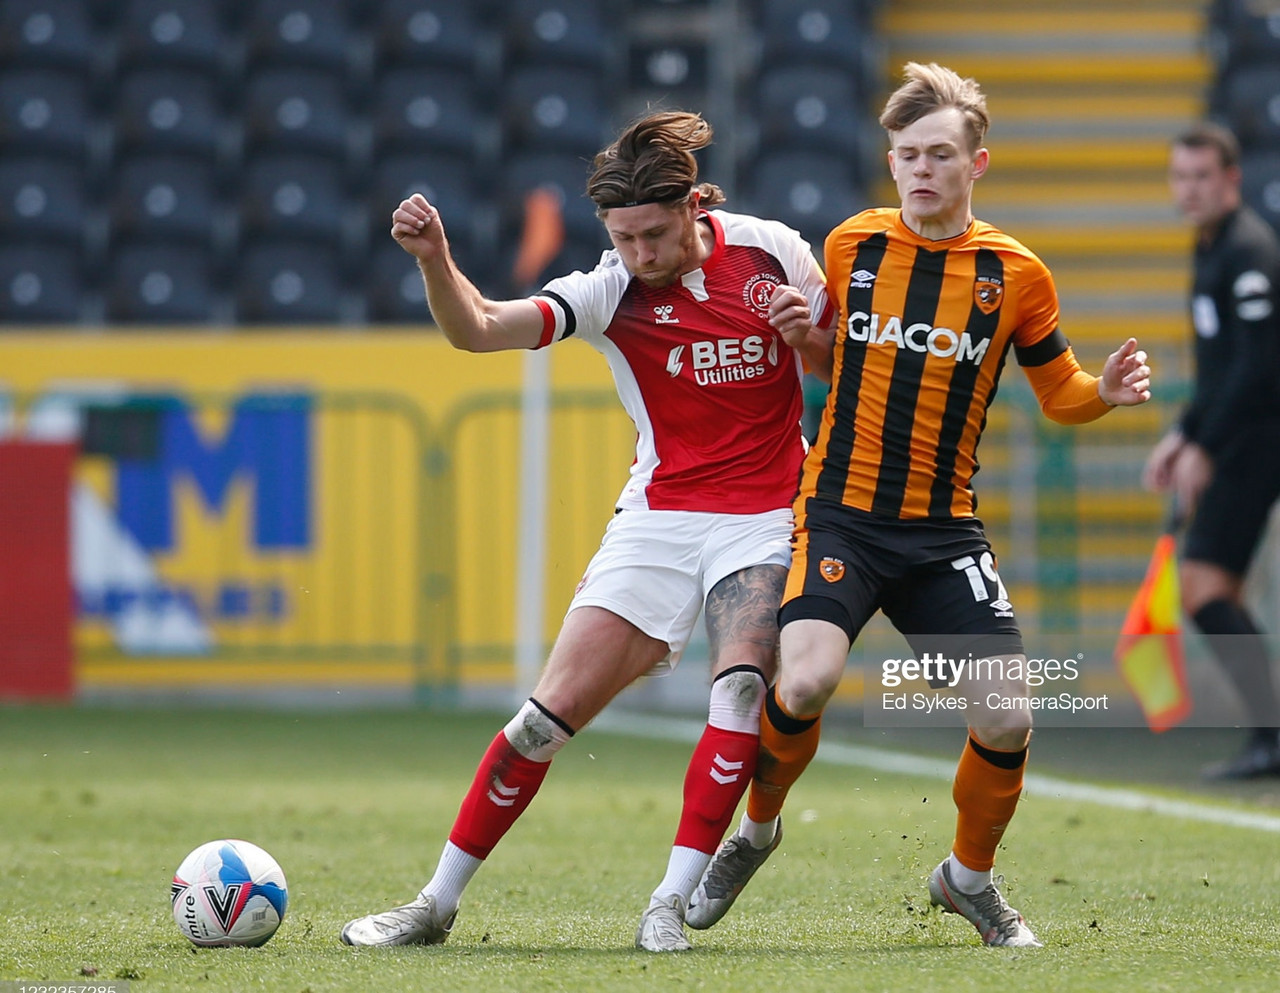 Hull City 2-1 Fleetwood Town: Tigers come from behind to open up three point lead